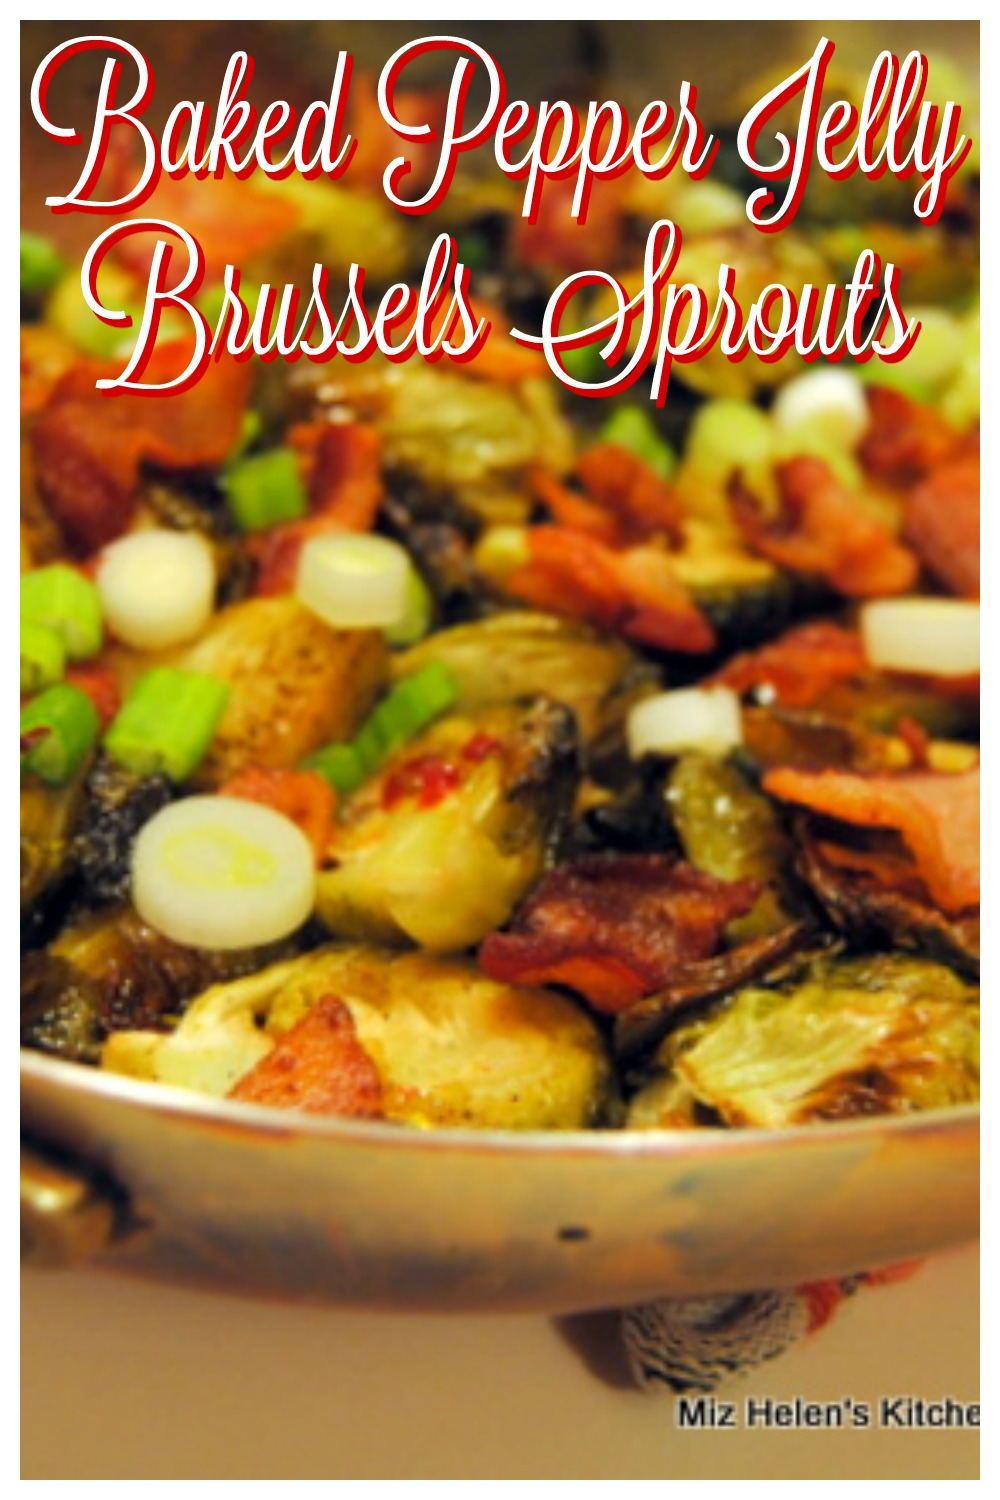 Baked Pepper Jelly Brussels Sprouts